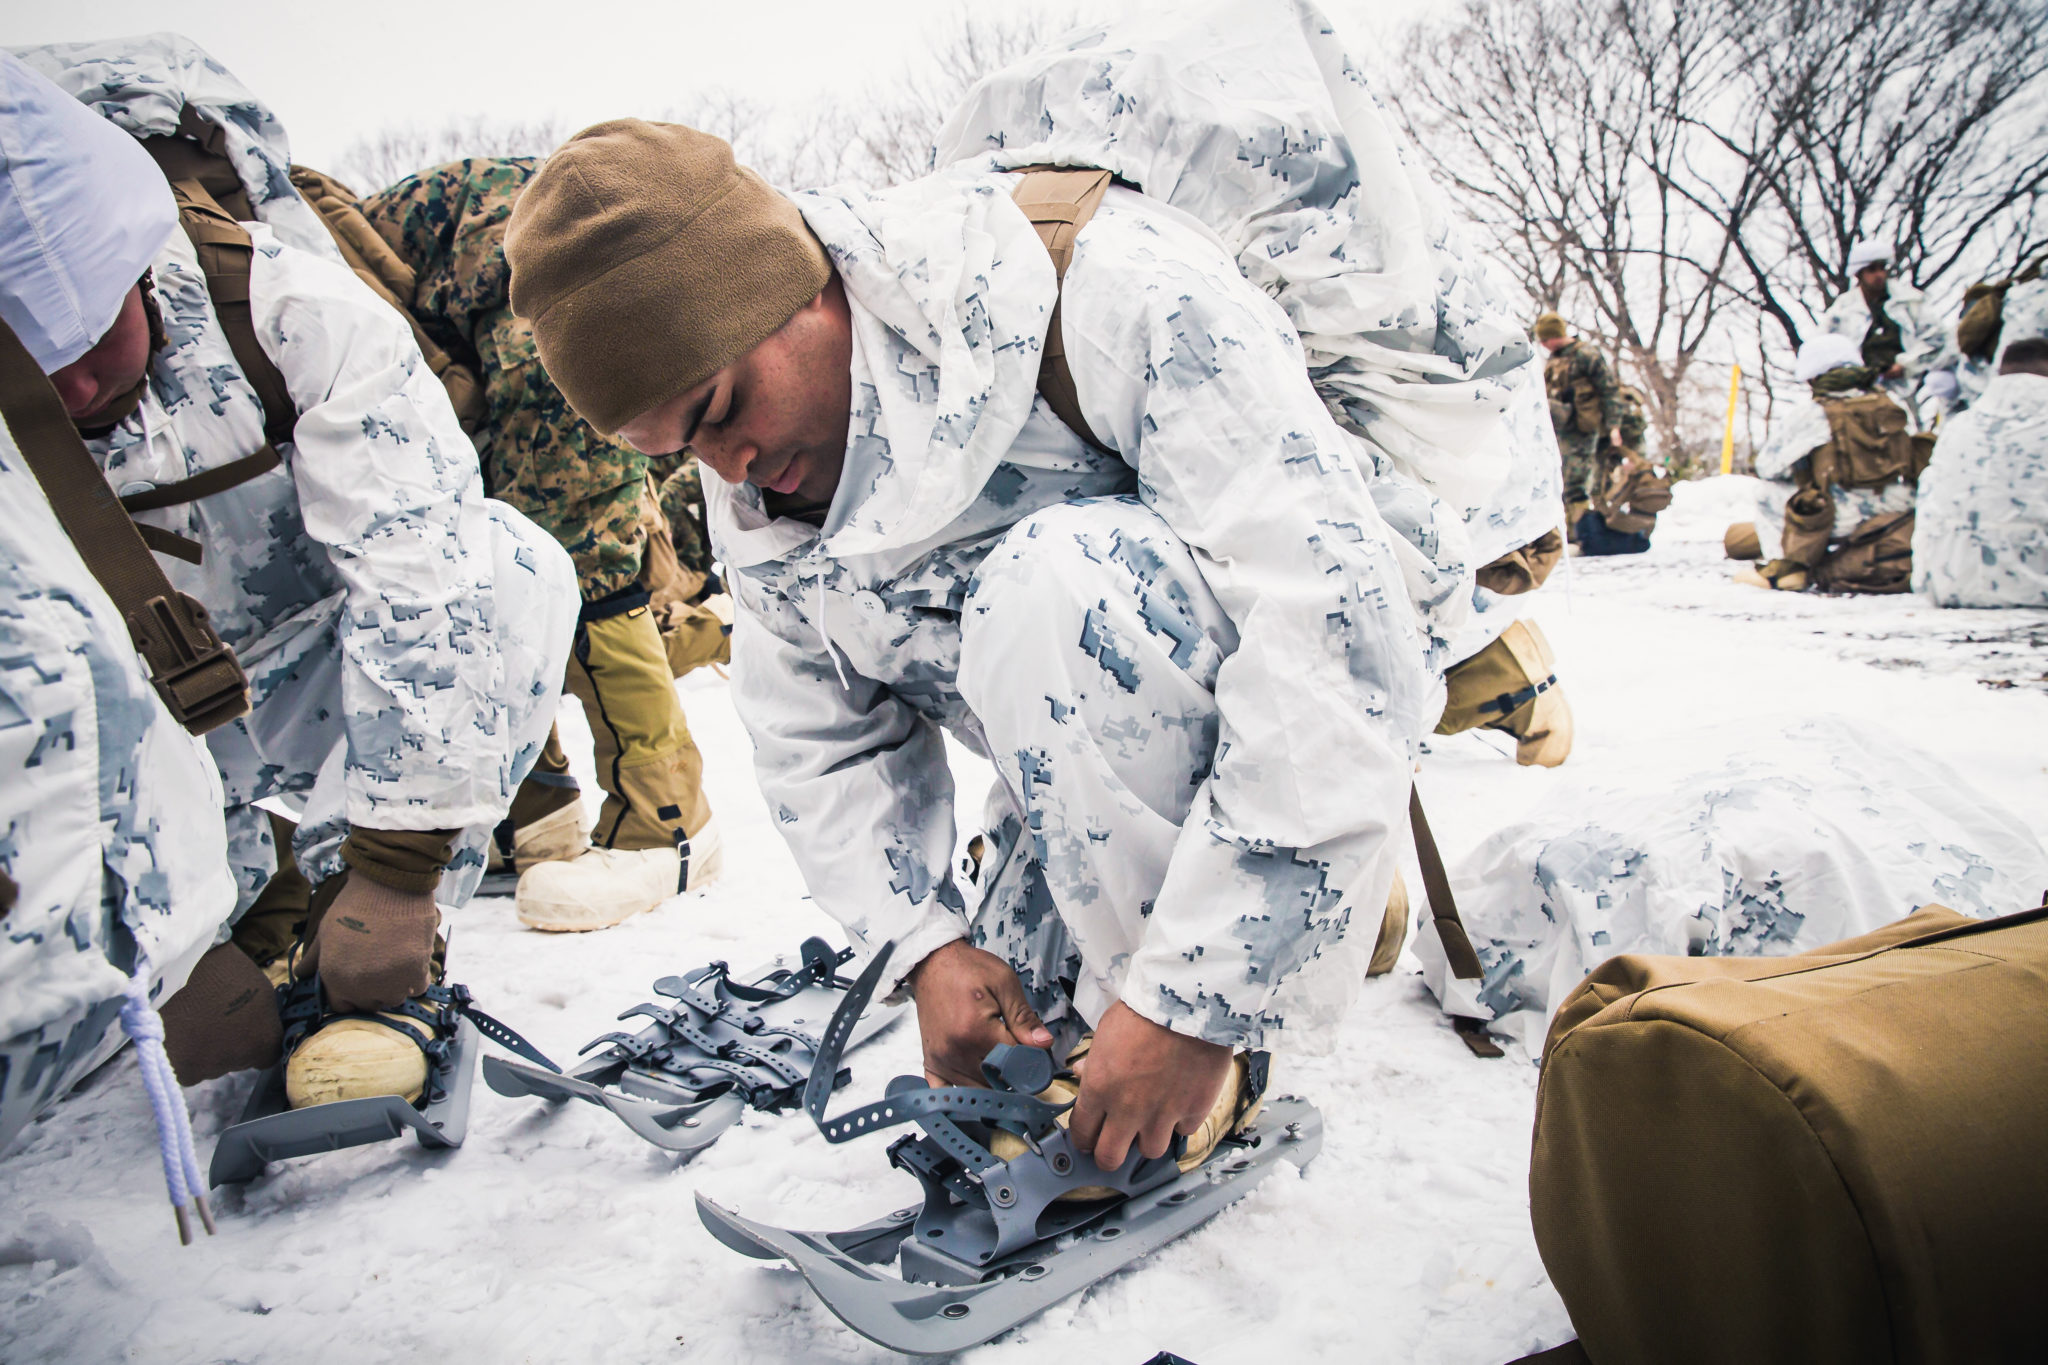 U.S. Marine Corps Lance Cpl. Brian Rubenacker adjusts his snow shoes during Exercise Forest Light on Camp Sendai, Sendai, Japan, Feb. 17, 2018. Marines conducted practical application using the extreme cold weather system. Rubenacker, a Farmdale, New York native, is a rifleman for Golf Company, 2nd Battalion, 1st Marine Regiment, 3rd Marine Division. (U.S. Marine Corps photo by Lance Cpl. Damion Hatch Jr.)